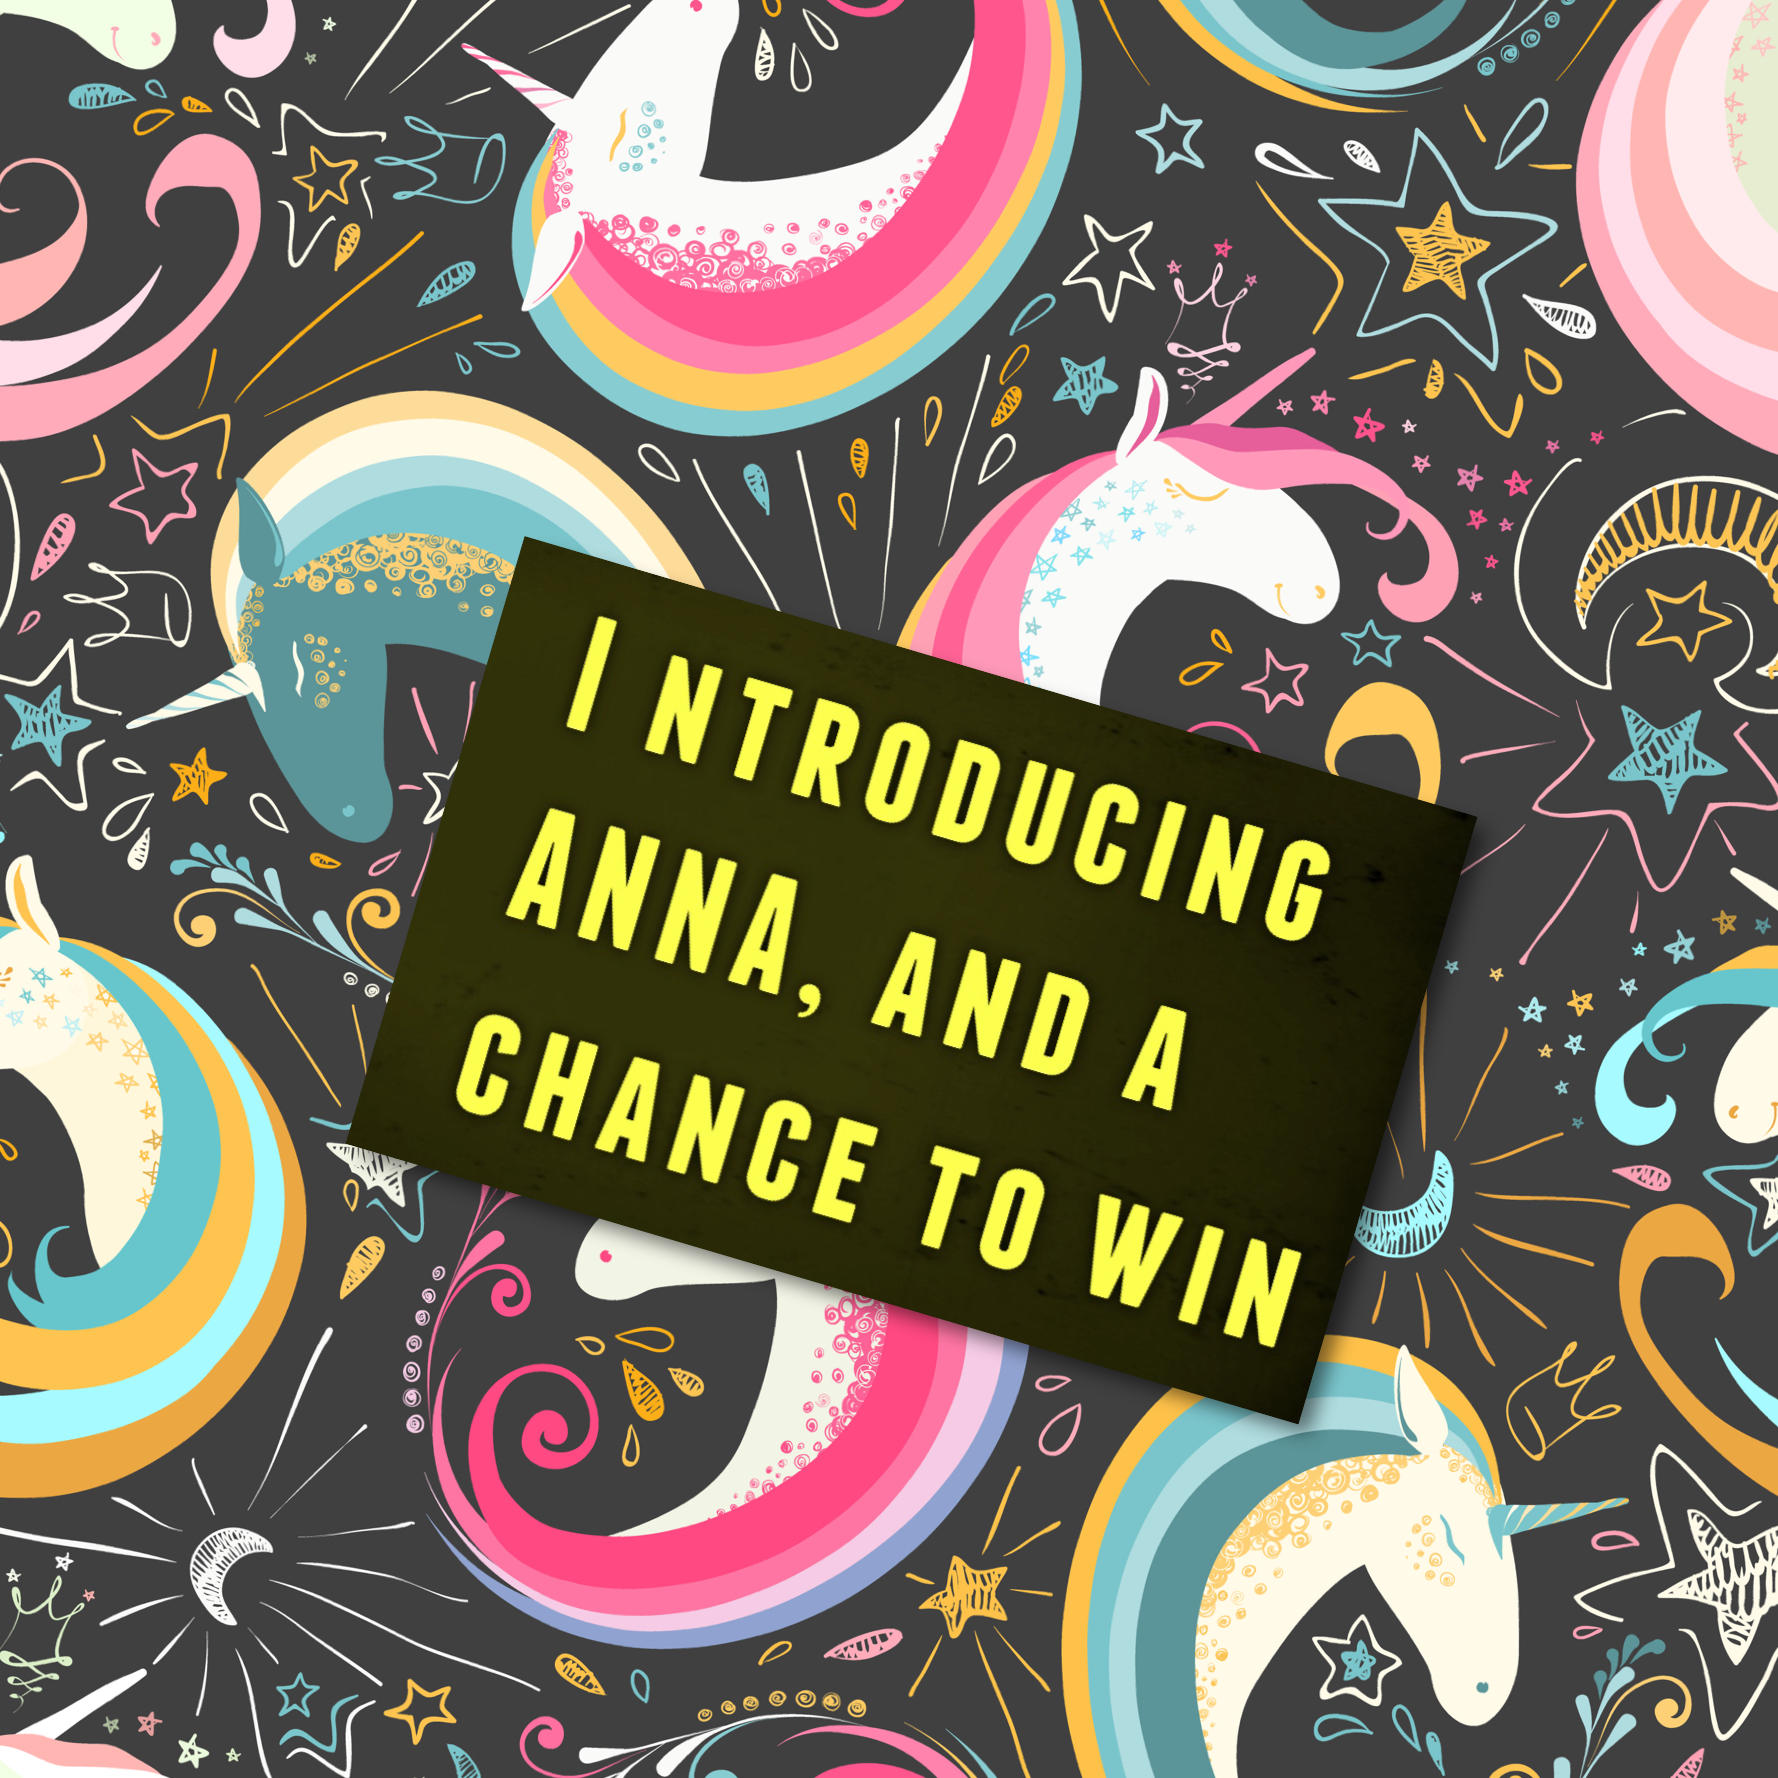 Introducing ANNA, and a chance to win!